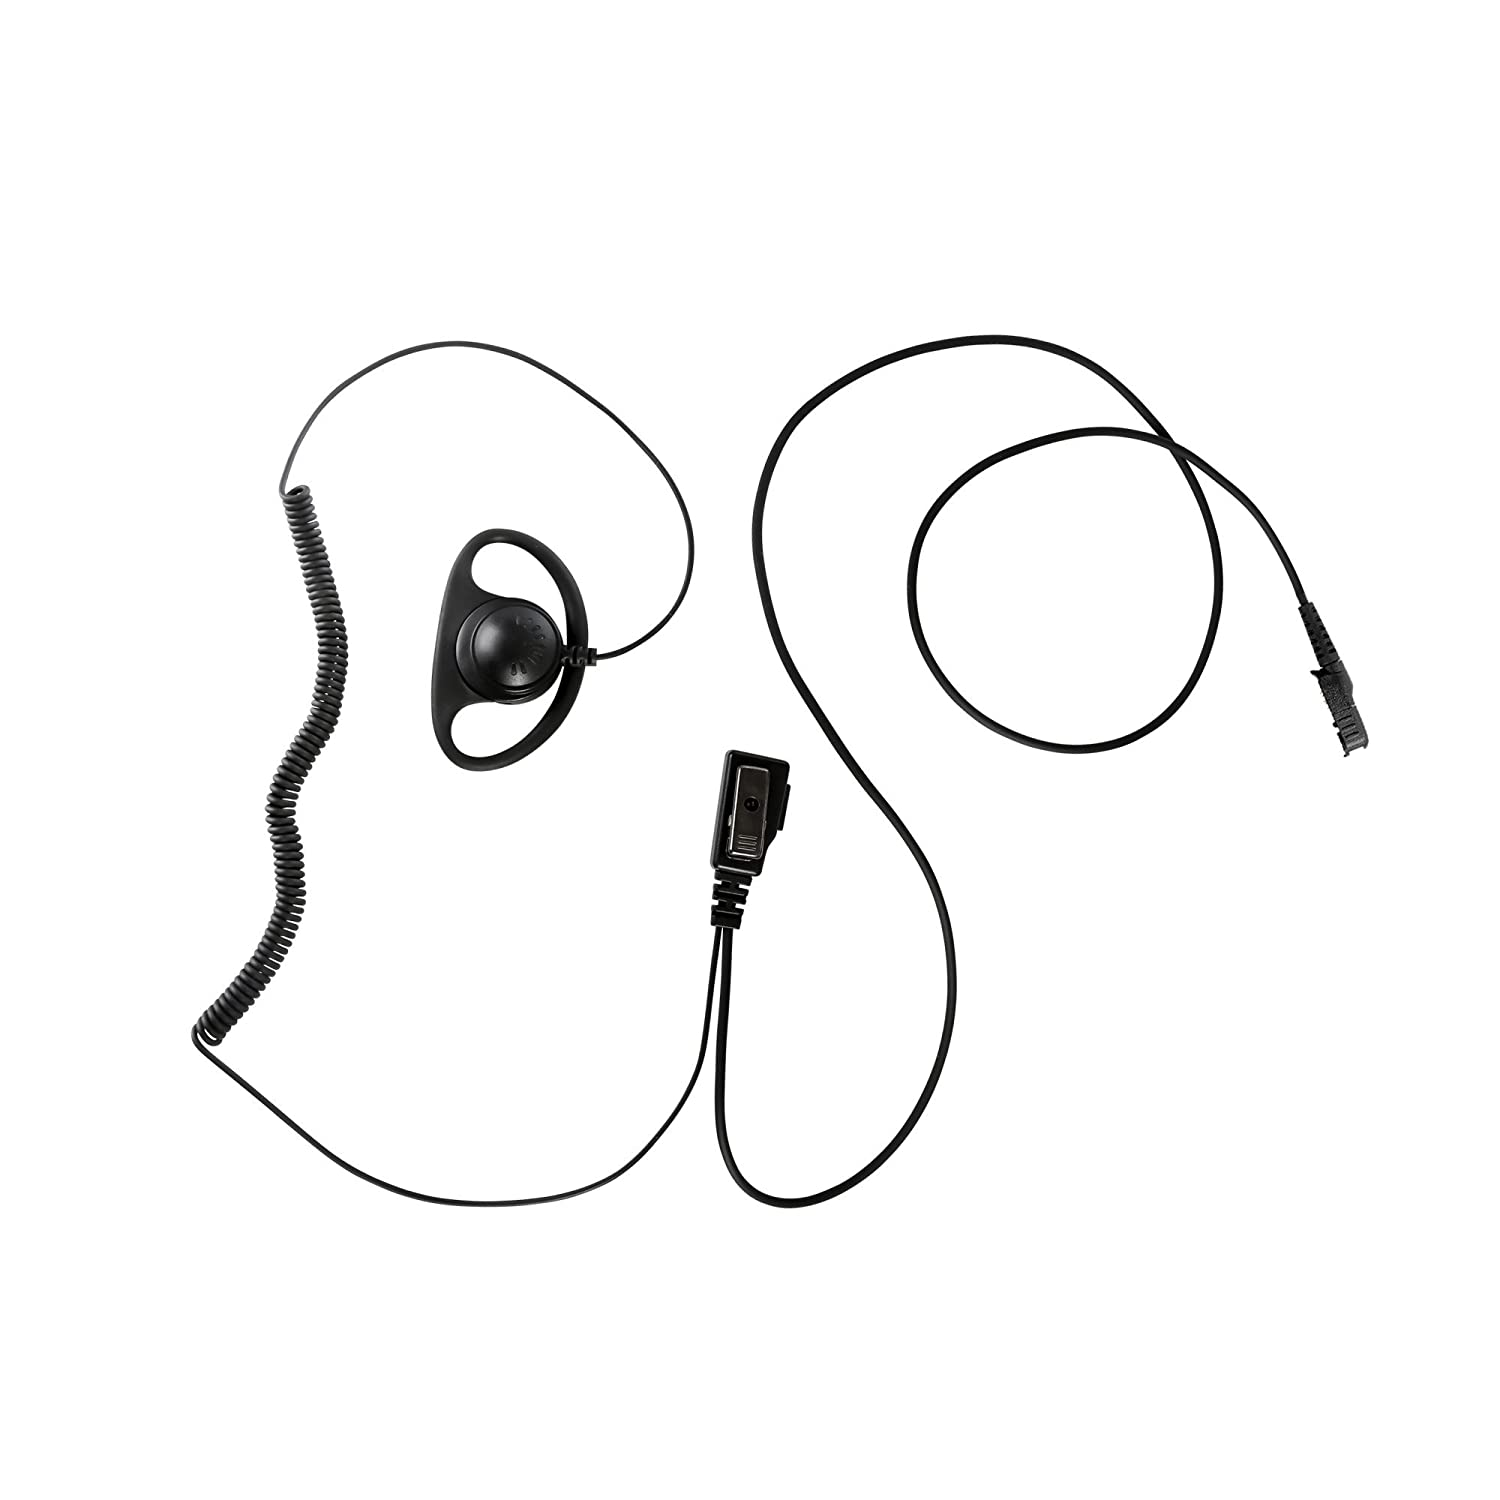 Maxtop AEH0407D-AX D Shape Clip-Ear Earhanger with PTT for Motorola MOTOTRBO Two Way Radio DP2400 DP2600 XPR3300